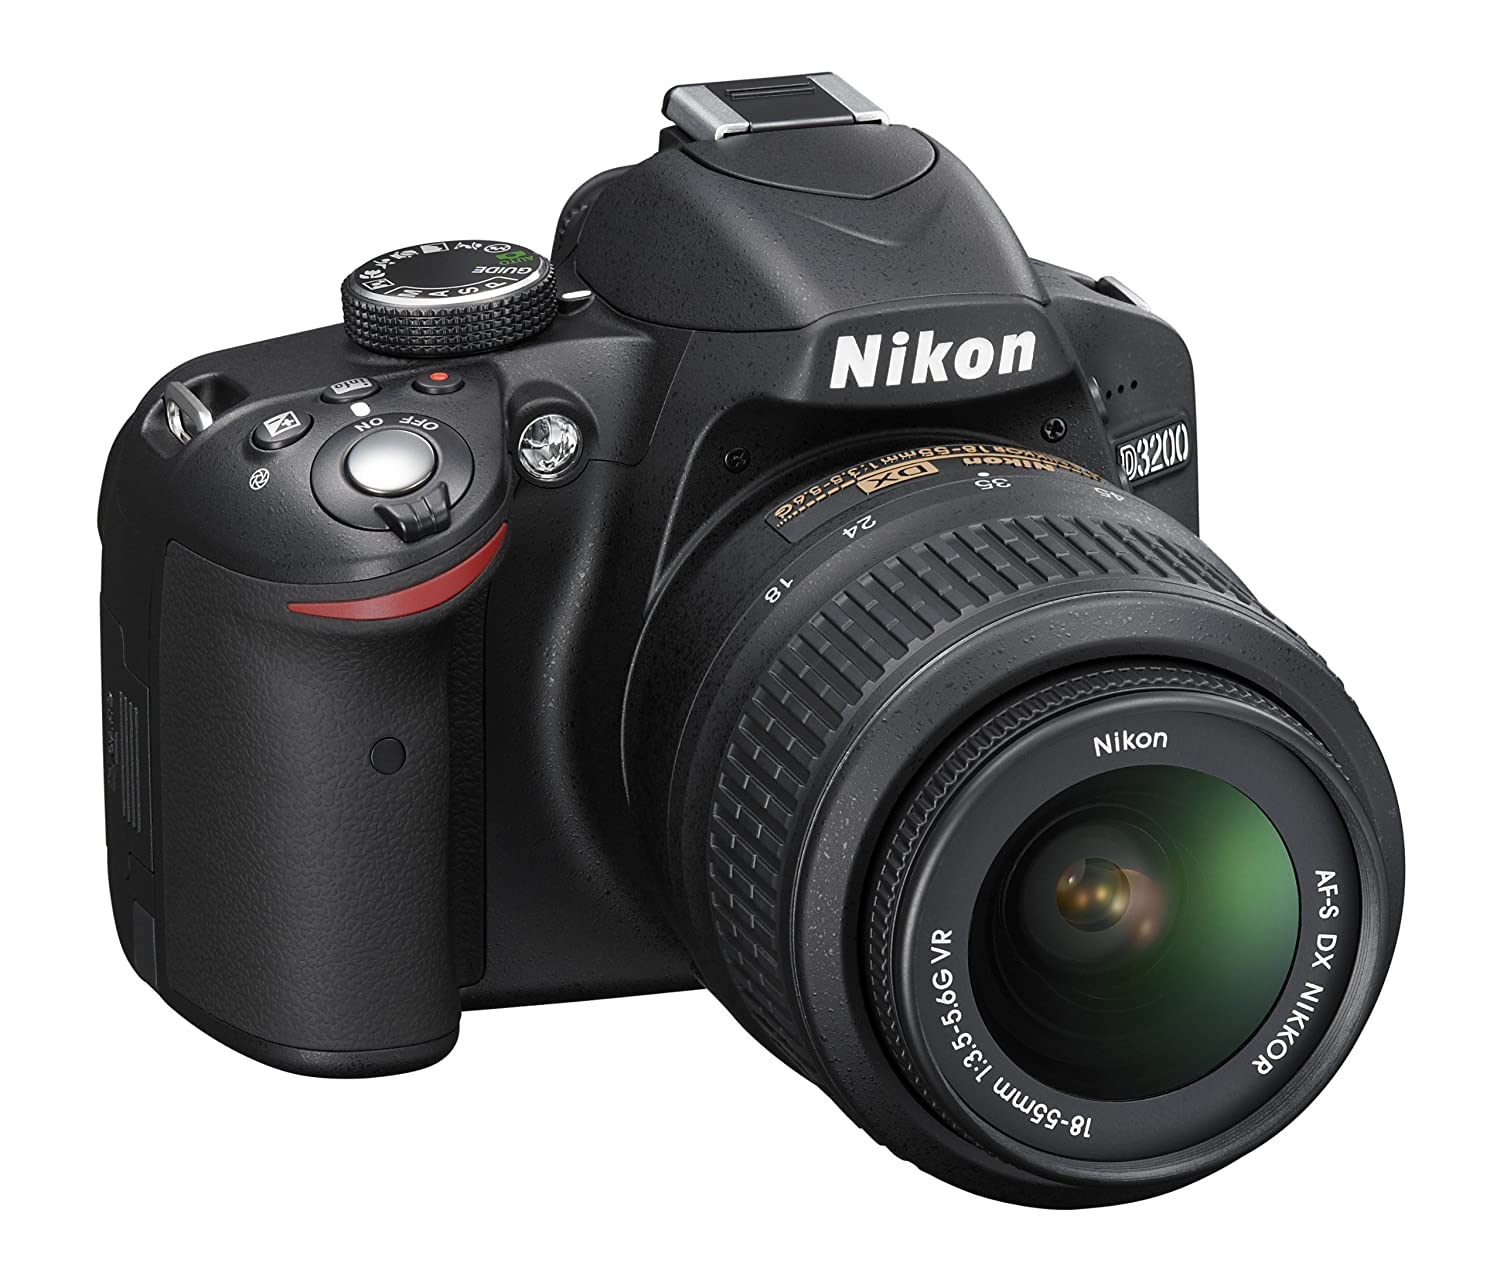 Camera Old Dslr Camera For Sale amazon com nikon d3200 24 2 mp cmos digital slr with 18 55mm f f3 5 6 auto focus s dx vr nikkor zoom lens black old model